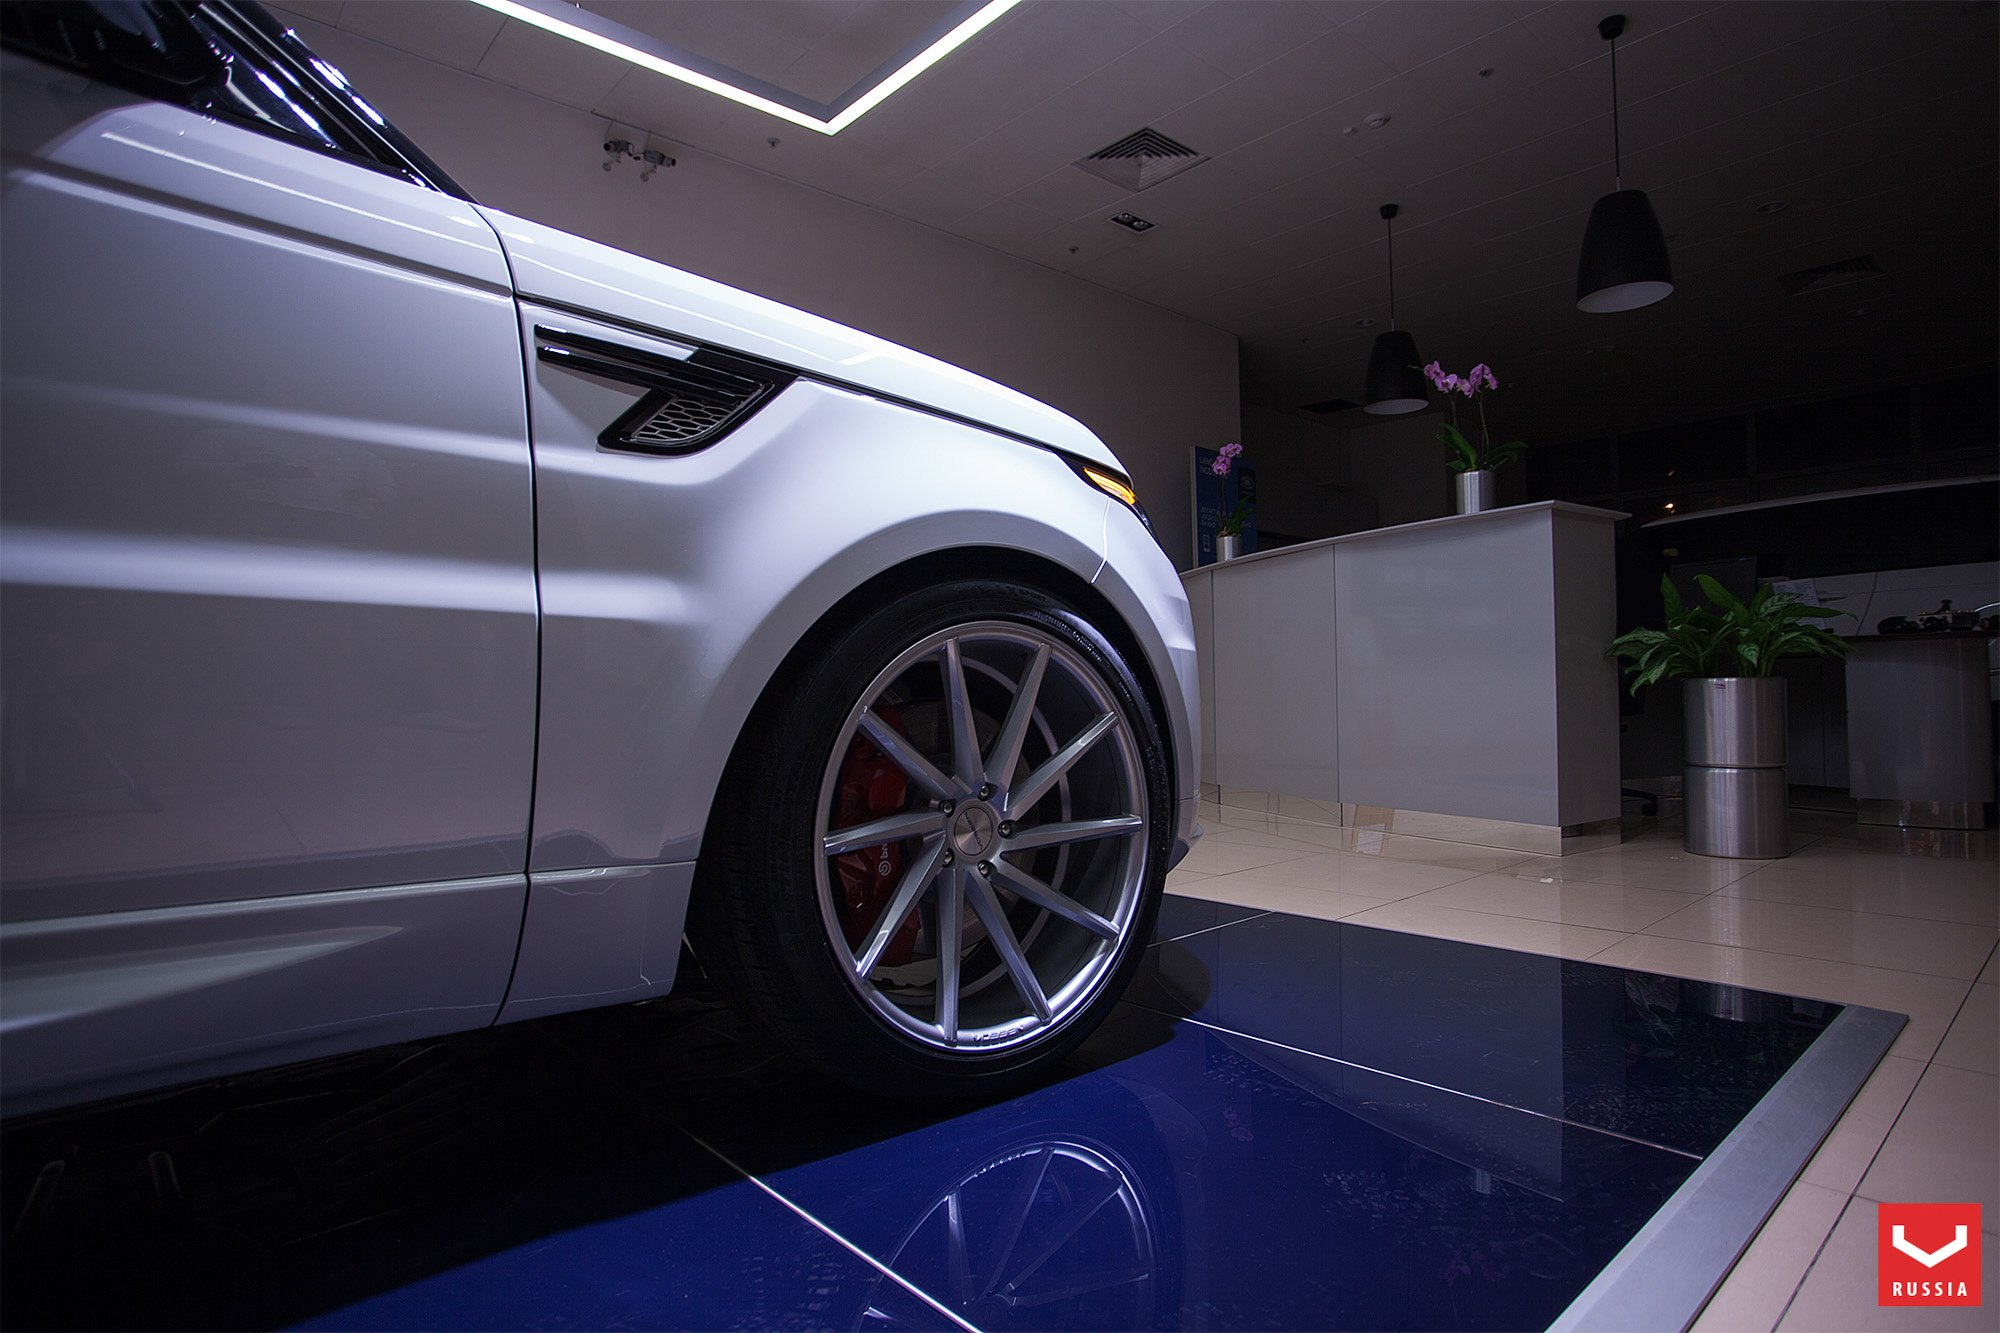 Vossen Rims with Red Brakes on Land Rover Range Rover Sport - Photo by Vossen